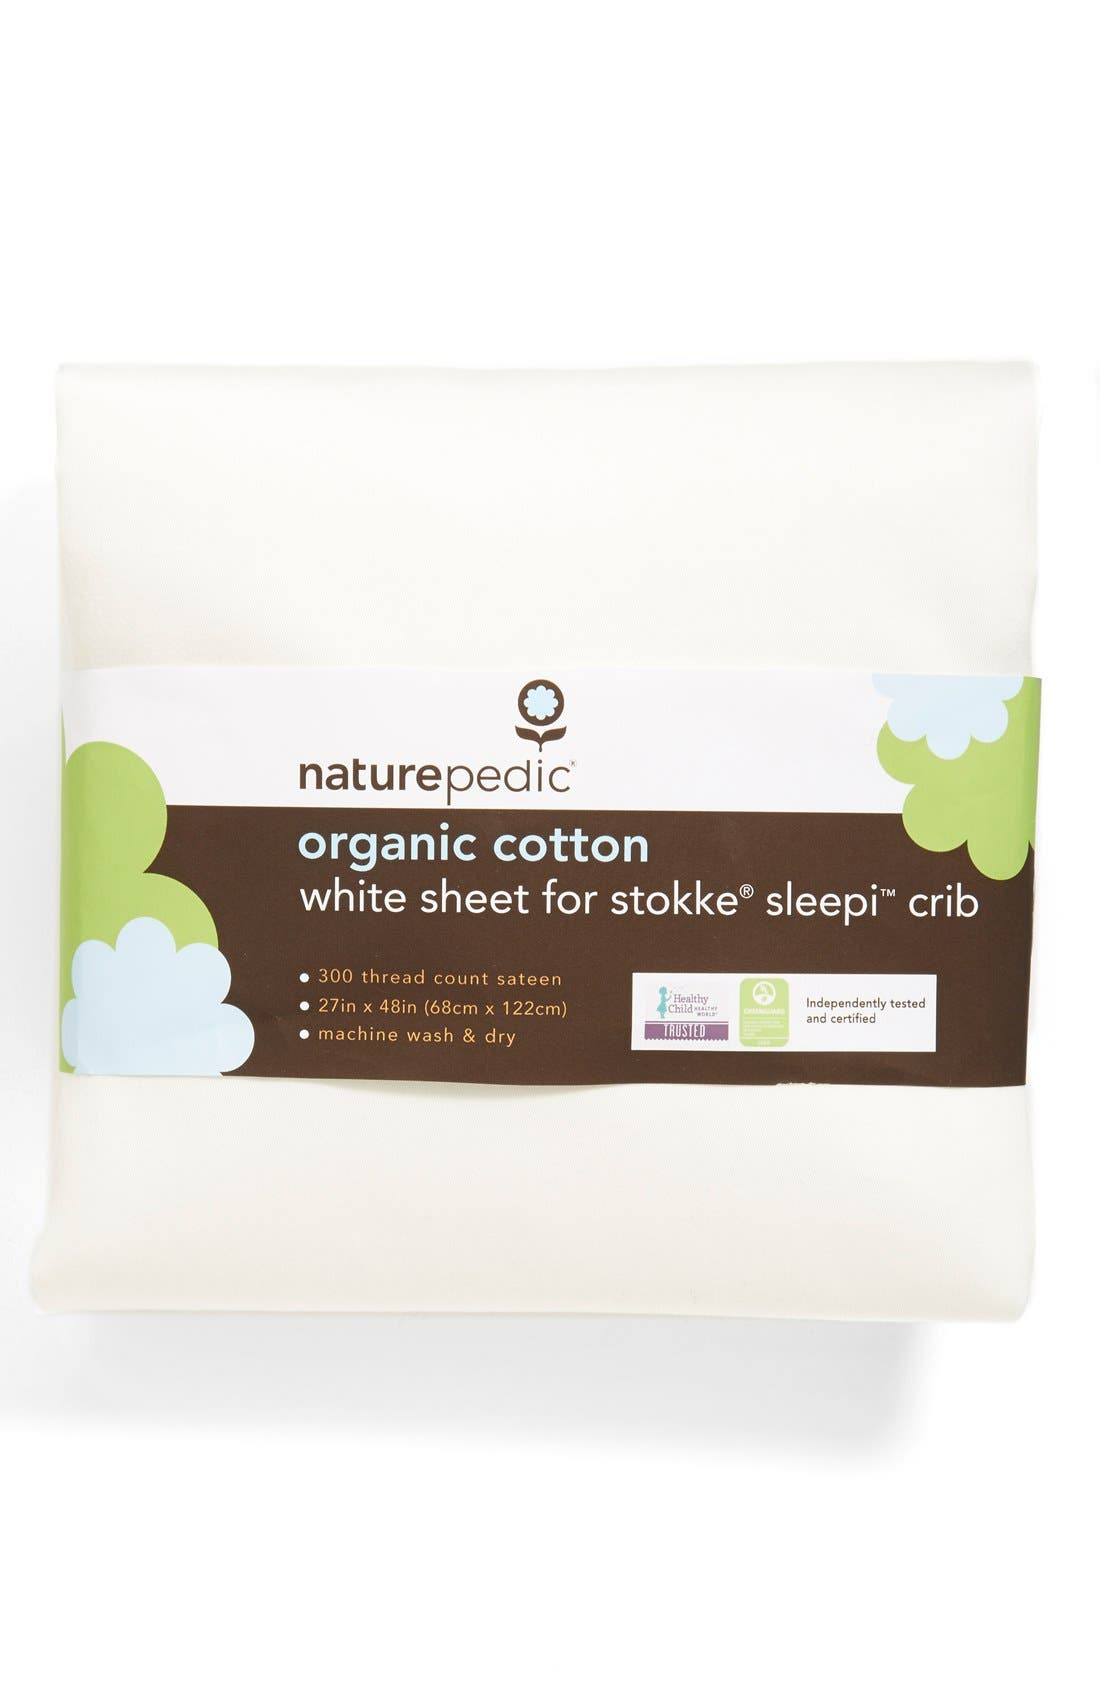 300 Thread Count Organic Cotton Oval Crib Sheet for Stokke Sleepi Crib,                         Main,                         color, White